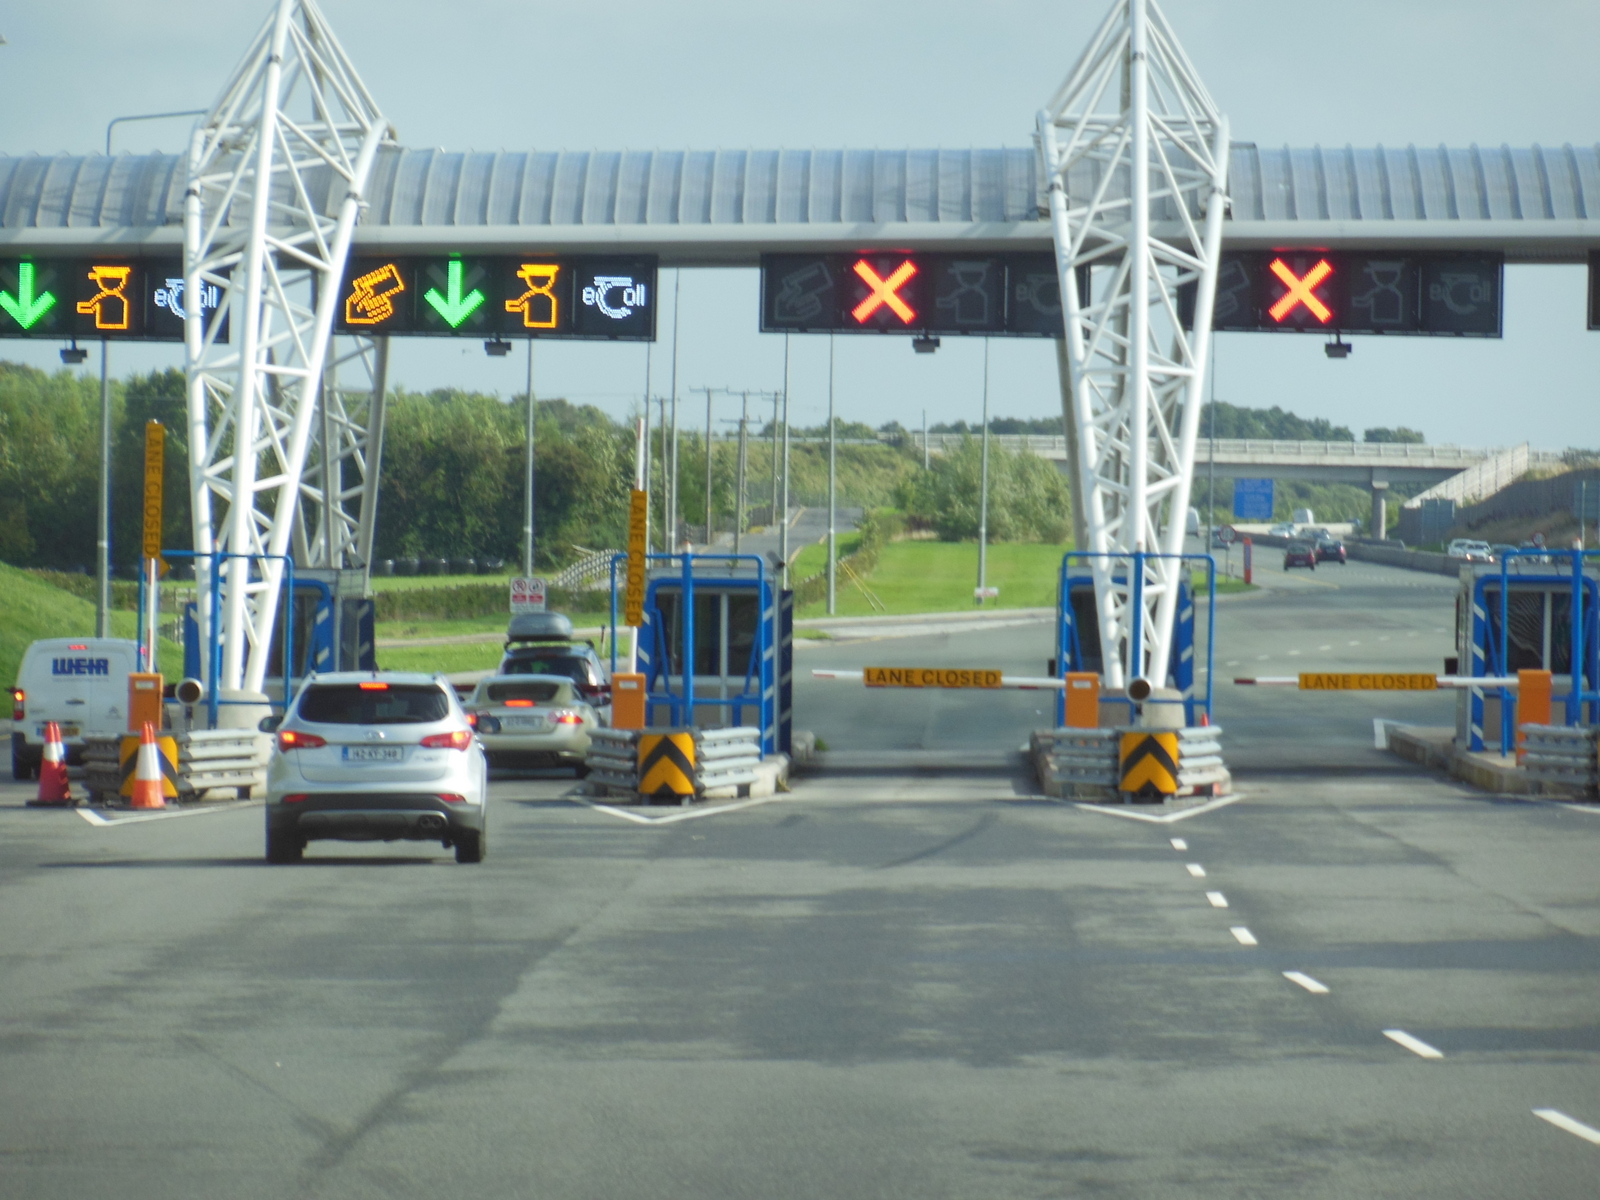 File:Toll Plaza on the M7.jpg - Wikimedia Commons